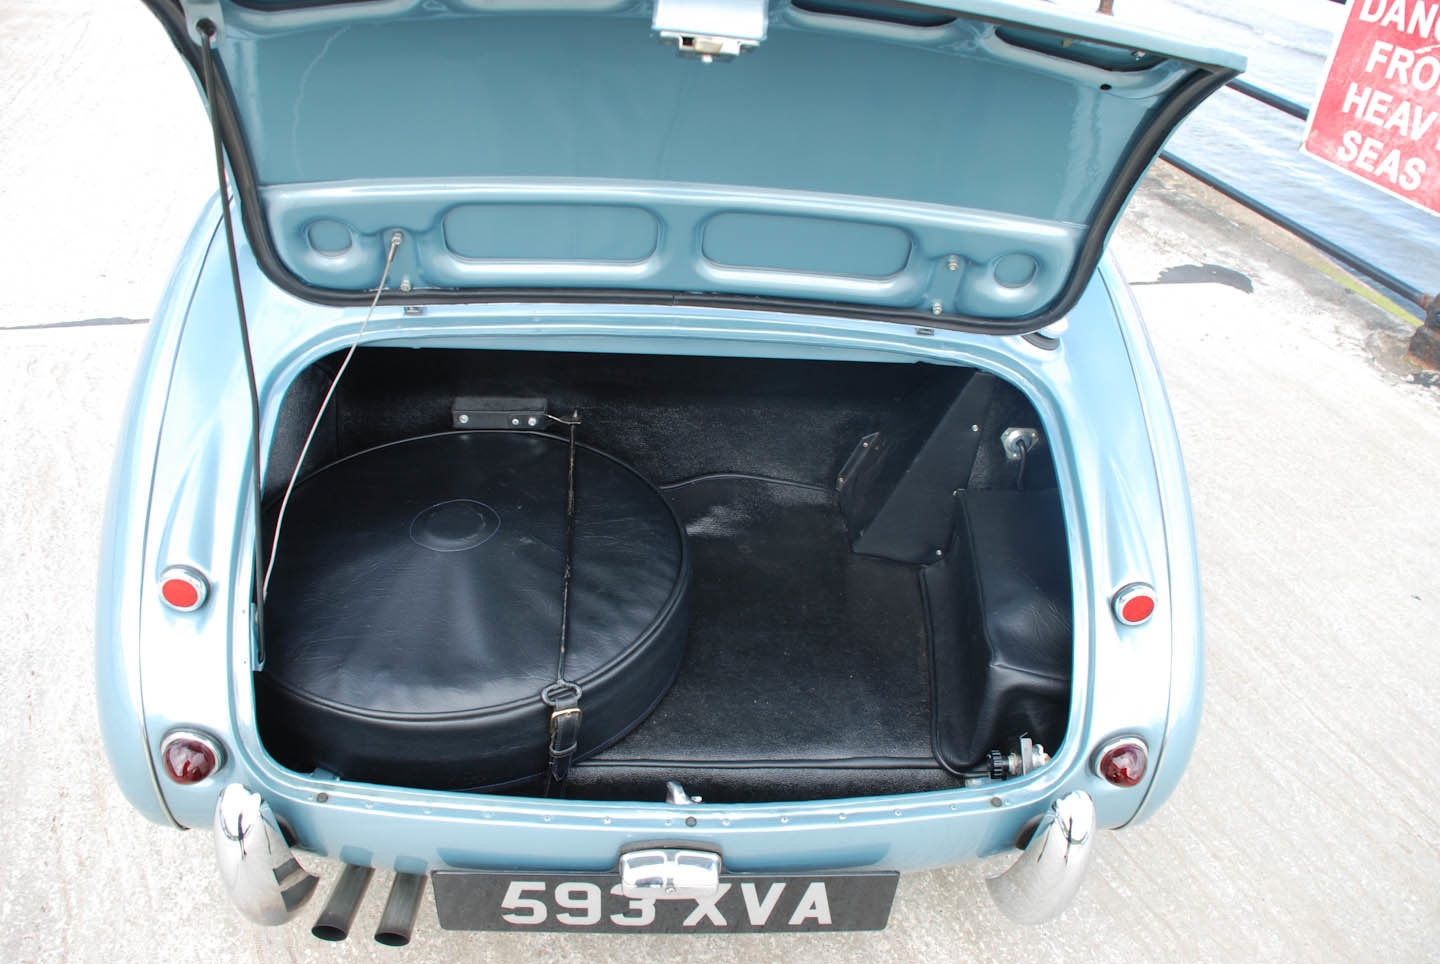 1962 Austin Healey 3000 Mk 2a BJ7 For Sale (picture 10 of 10)